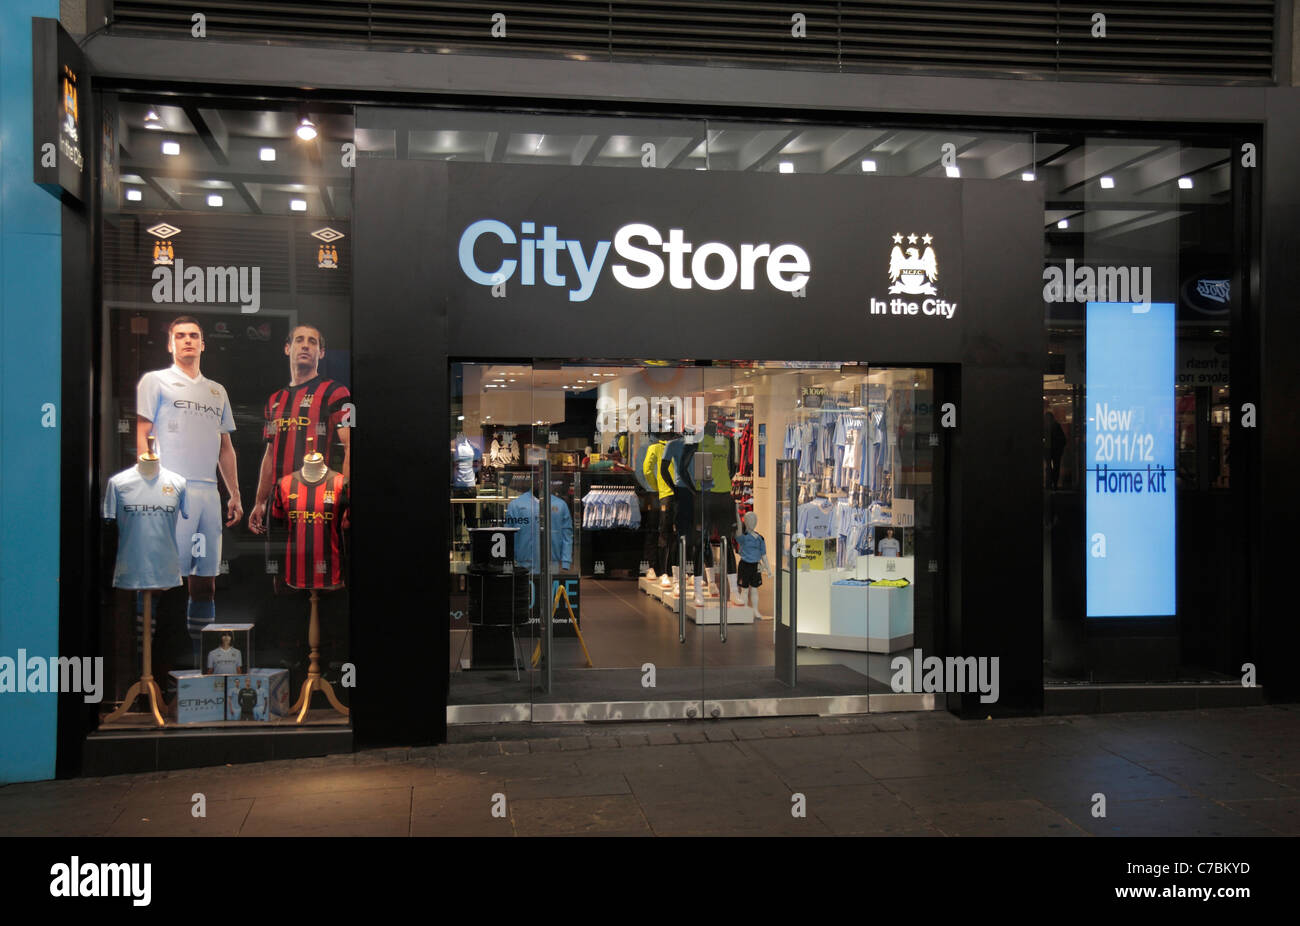 CityStore, the Manchester City English Premiership team store in Machester, UK. - Stock Image